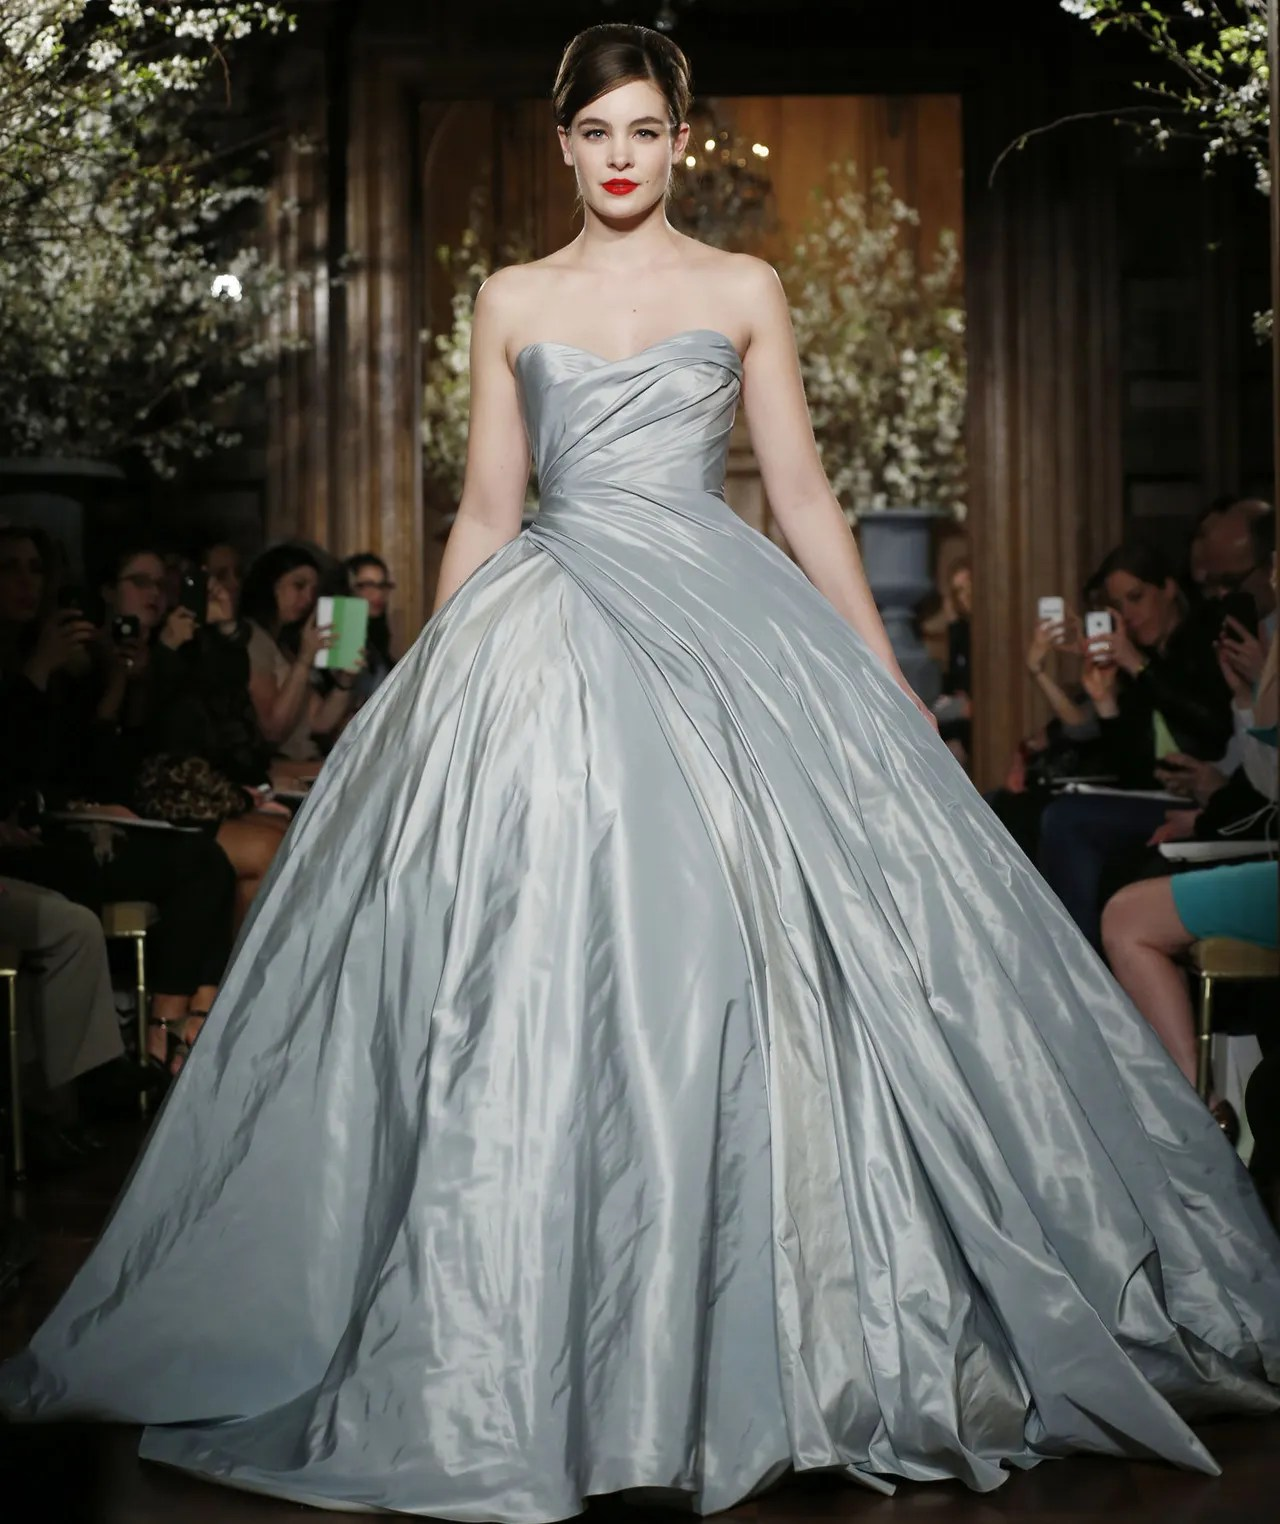 New Romona Keveza Wedding Dresses Starring Over The Top